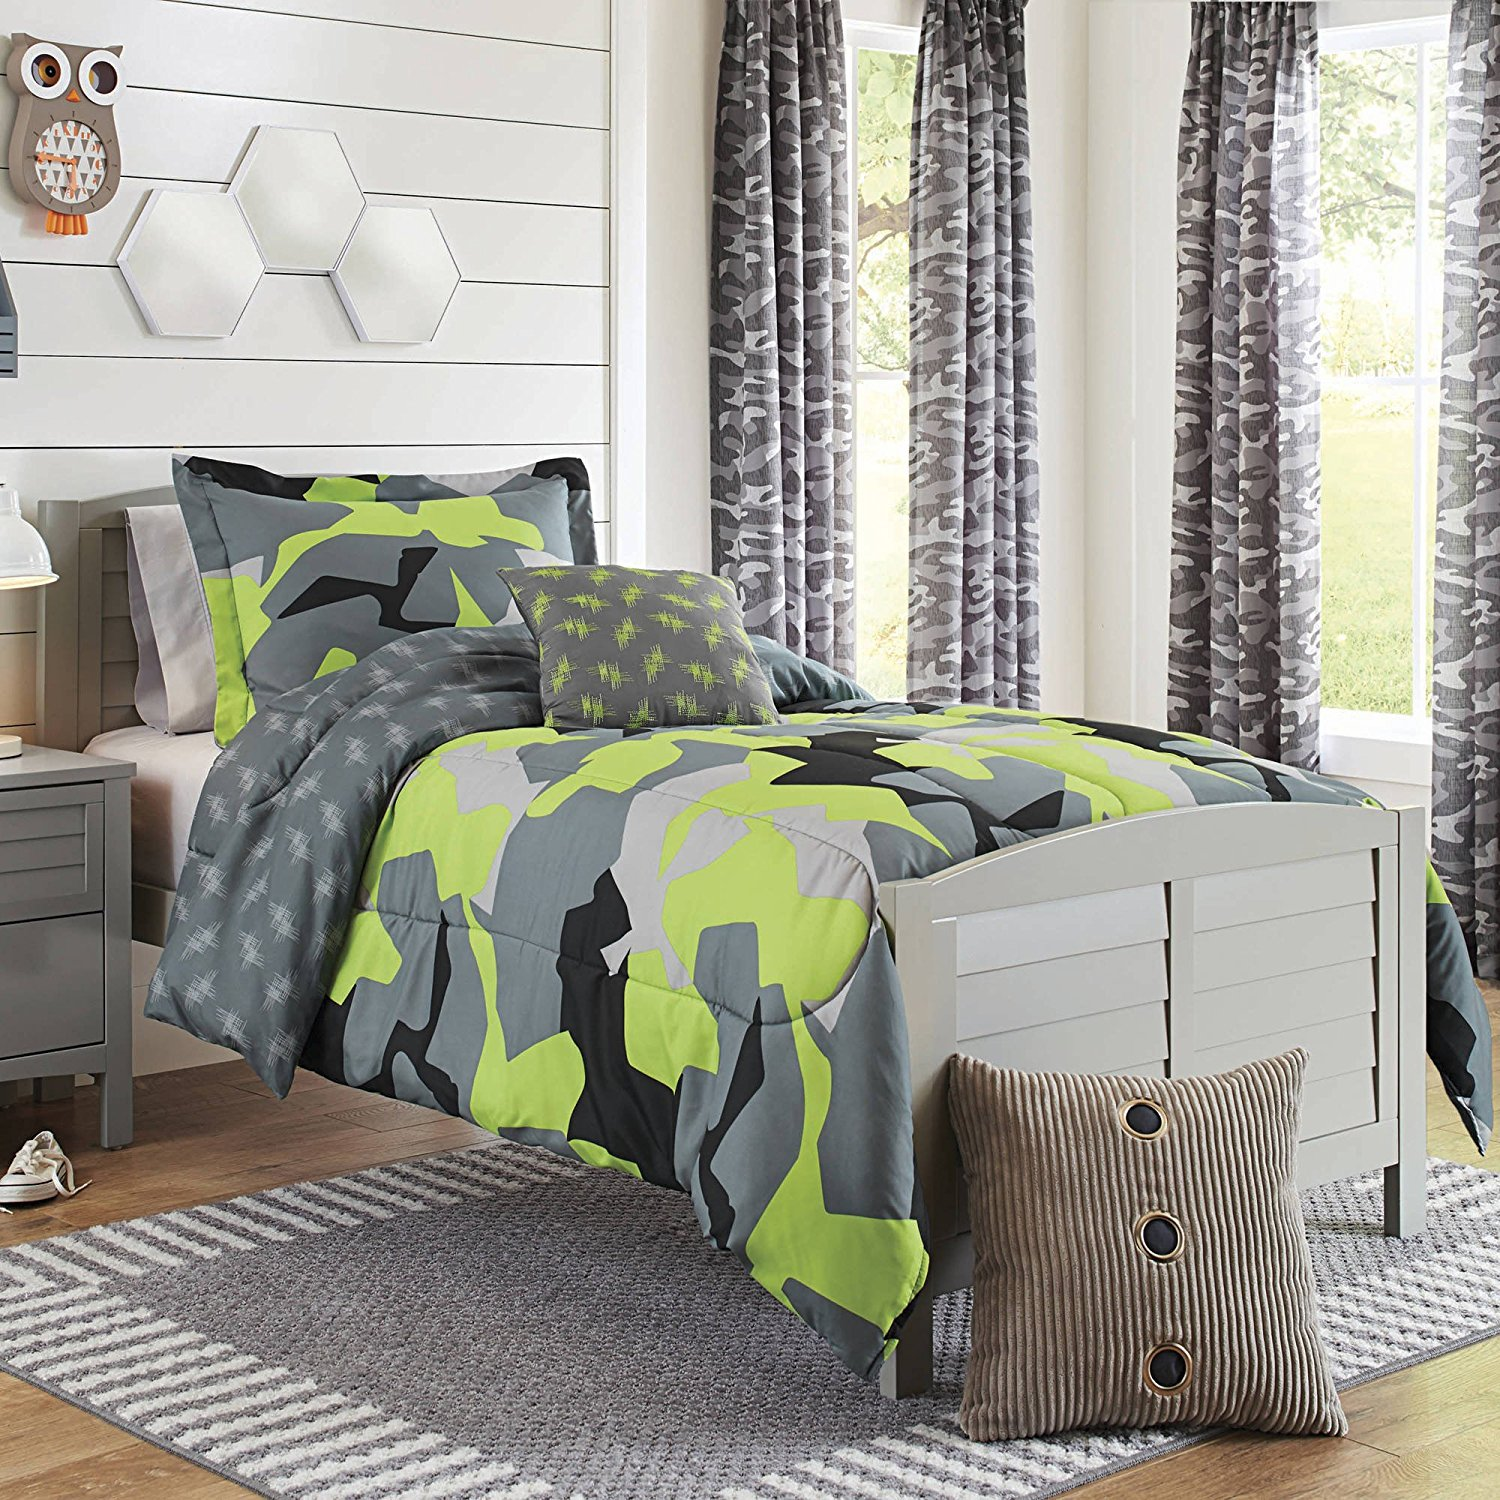 3 Piece Boys Lime Grey Black Camo Comforter Twin Twin Xl Set, Multi Camouflage Pattern Army Themed Stylish Green Plaid Design Kids Bedding Teen Bedroom, Reversible Solid Grey Color Trendy, Polyester